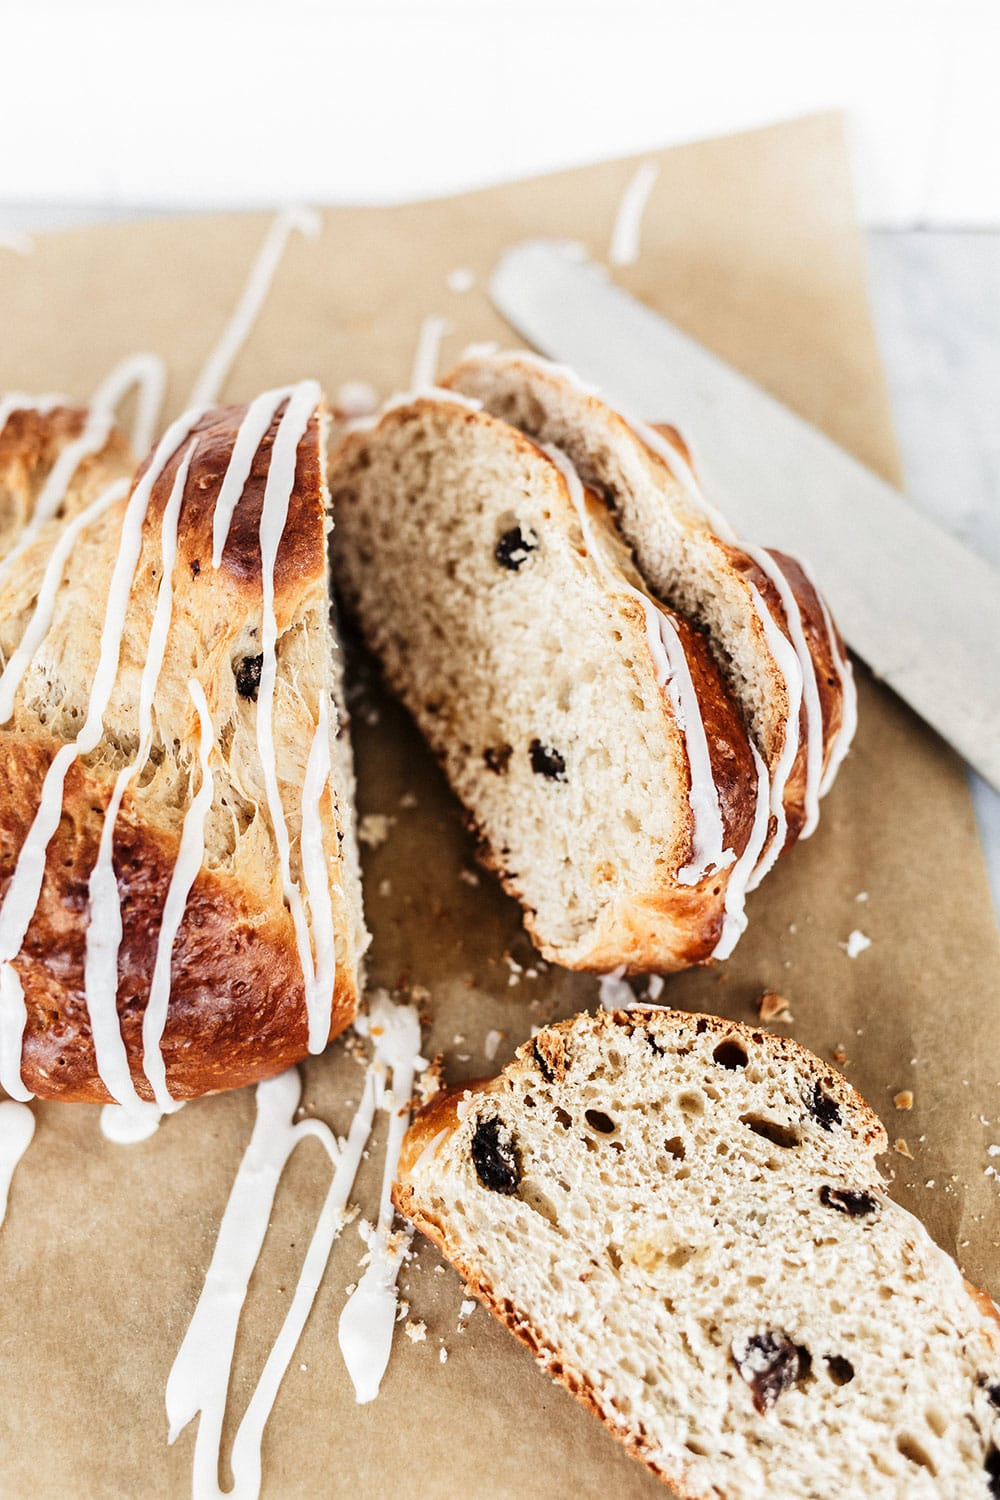 This Rum Raisin Bread is beautifully braided and loaded with comforting flavors, making it perfect for the holiday season. A super impressive recipe, but surprisingly achievable!